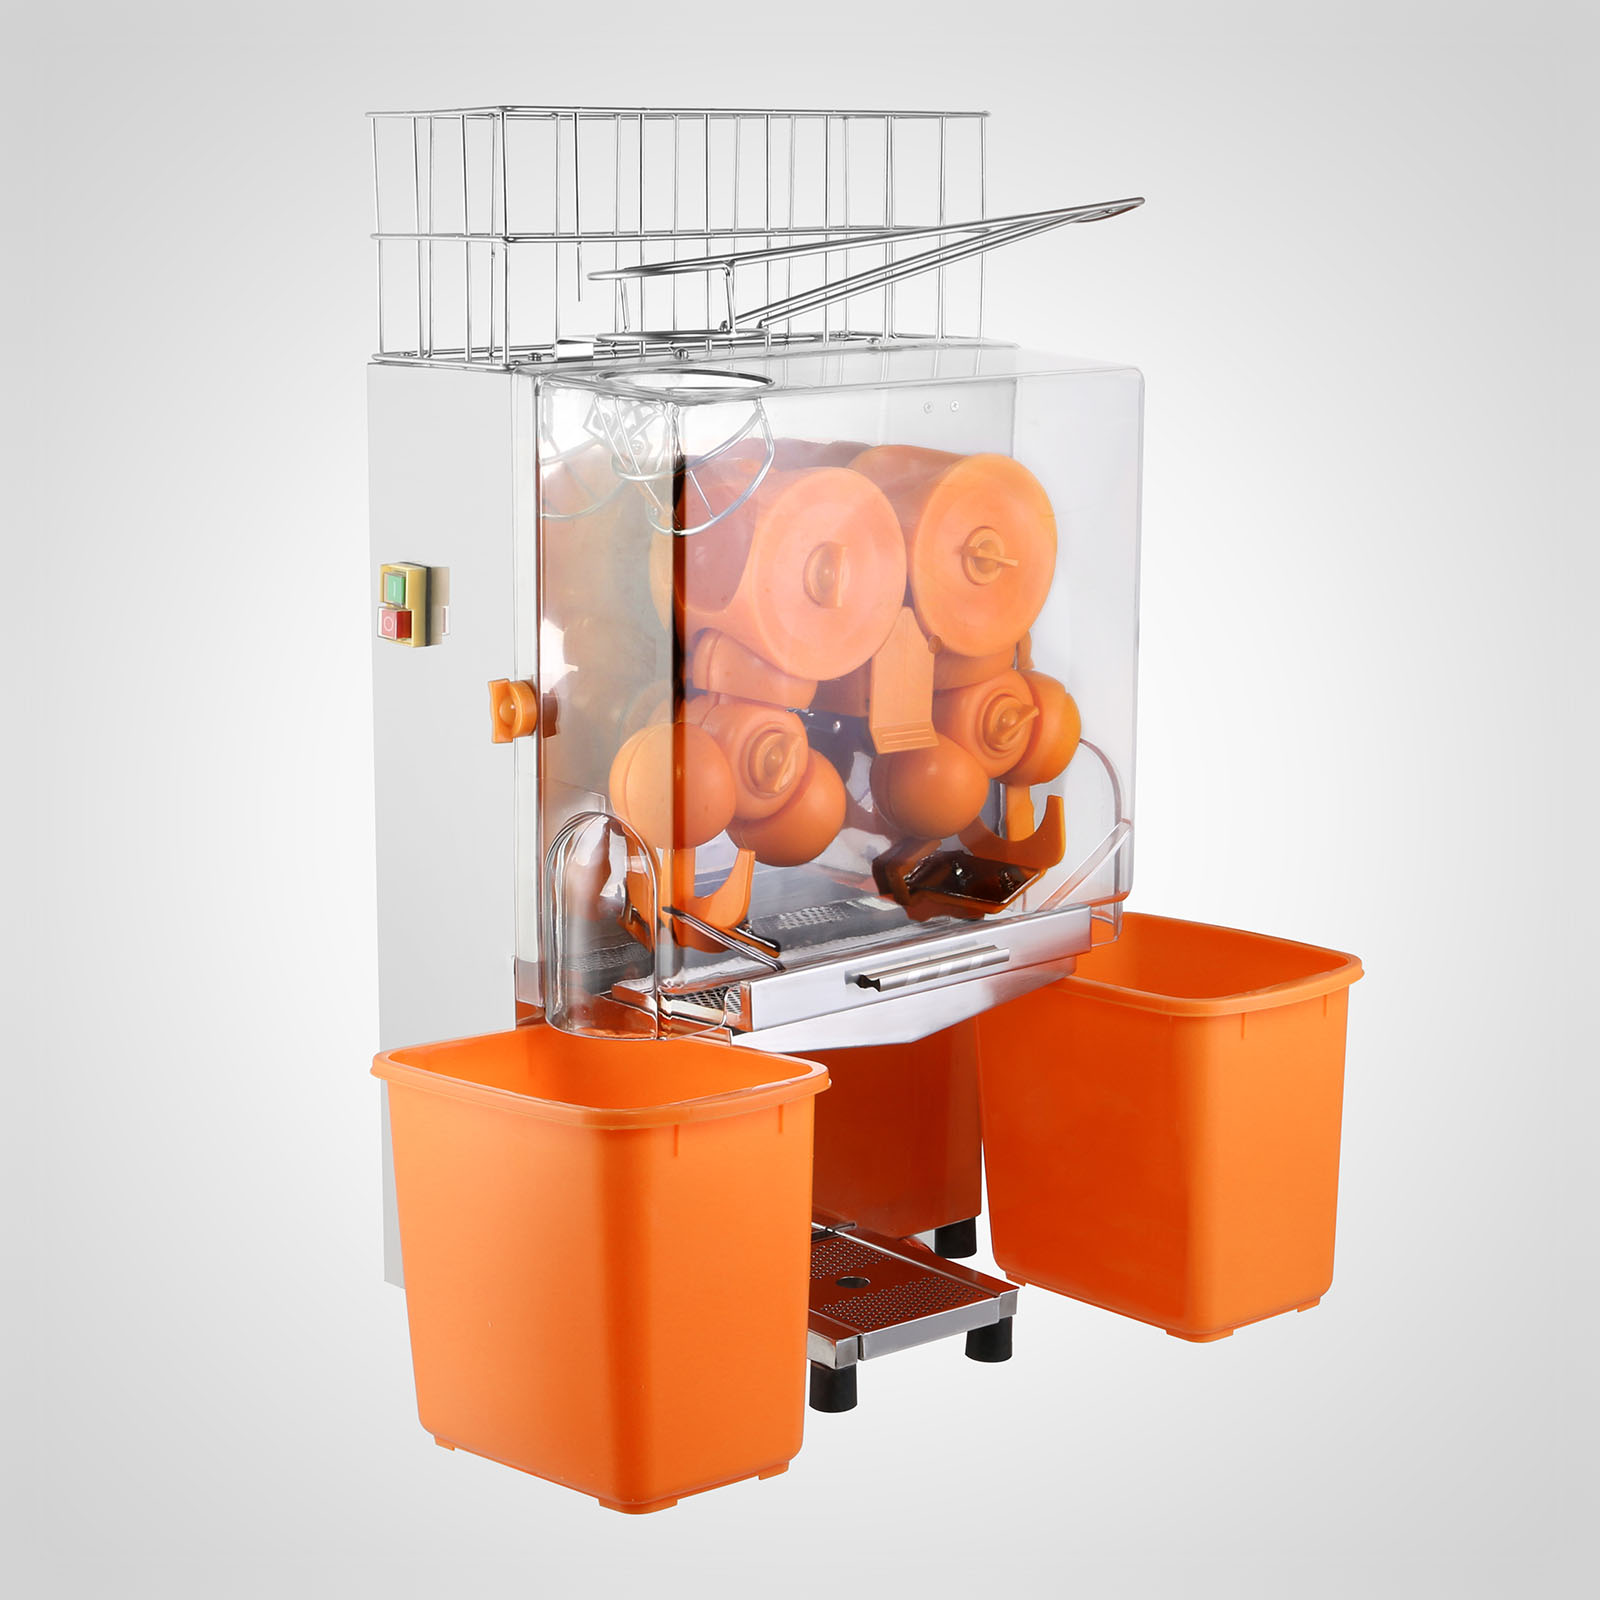 Machine A Presser Les Oranges 120w Agrumes Juicer Jus D 39orange Extracteur Presse Citron